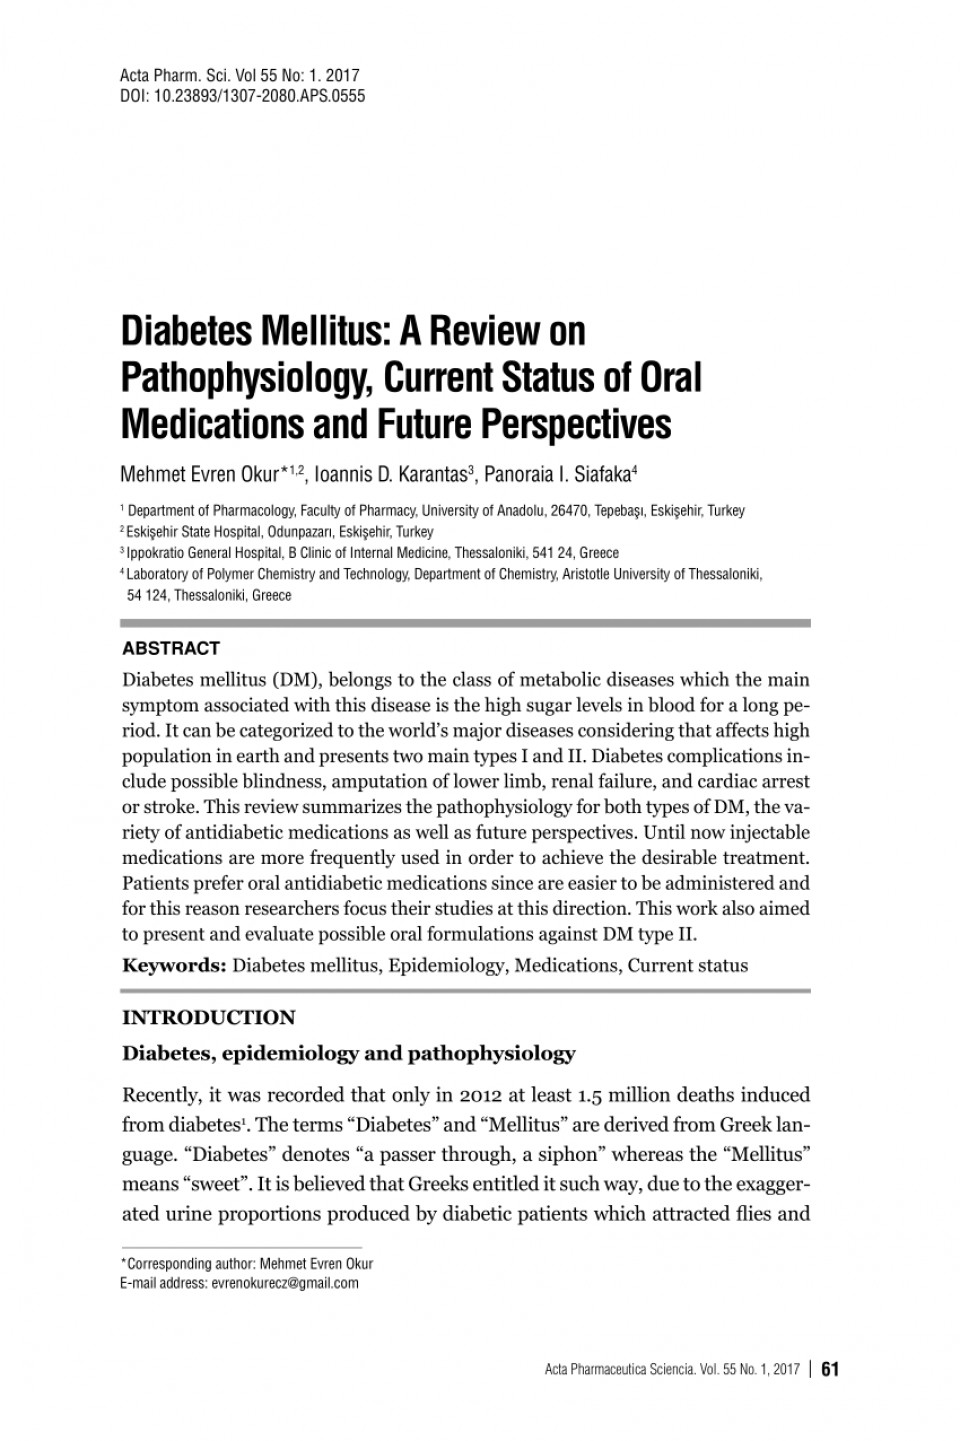 003 Diabetes Mellitus Researchs Pdf Largepreview Magnificent Research Papers 960